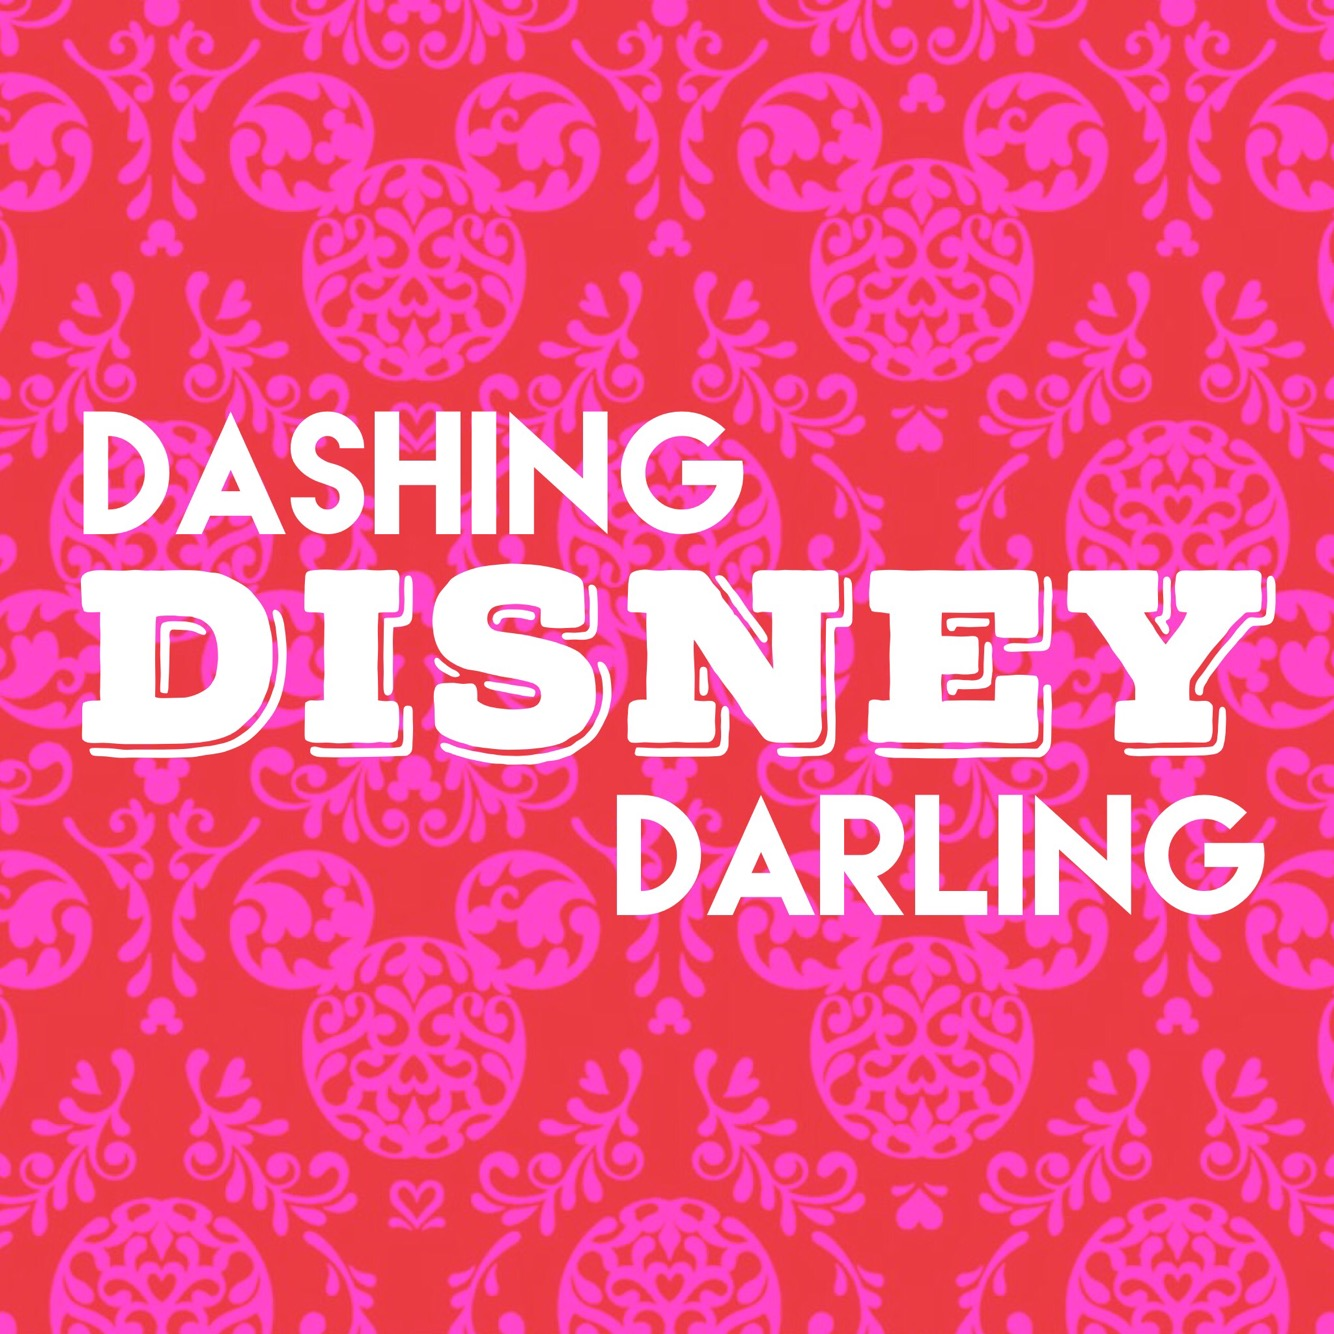 Dashing Disney Darling